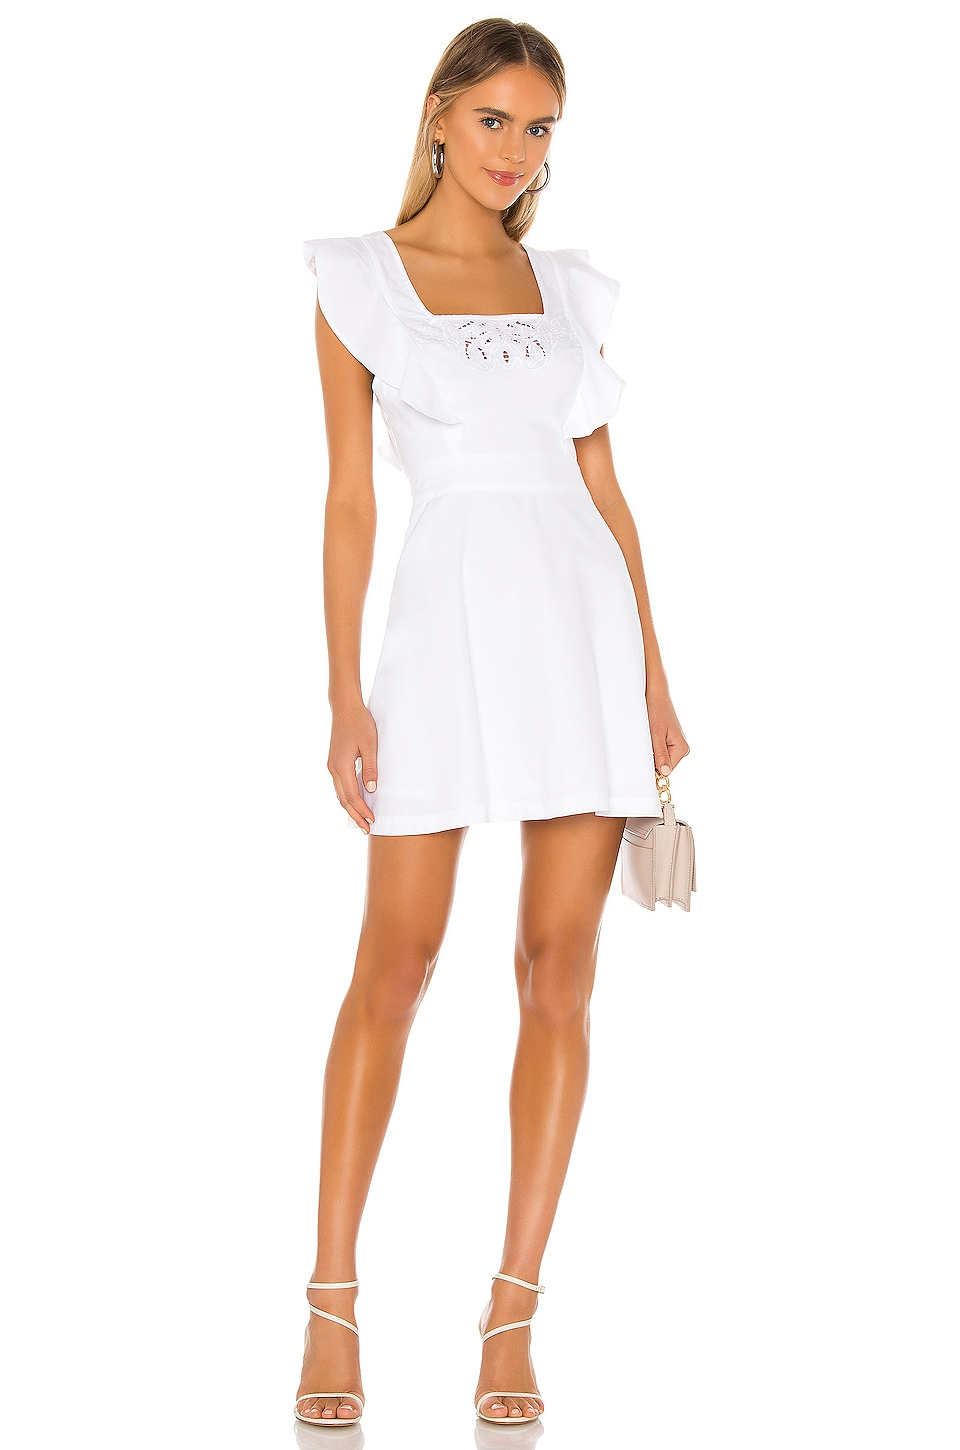 Tie Back Dress             BCBGeneration                                                                                                       CA$ 162.65 13